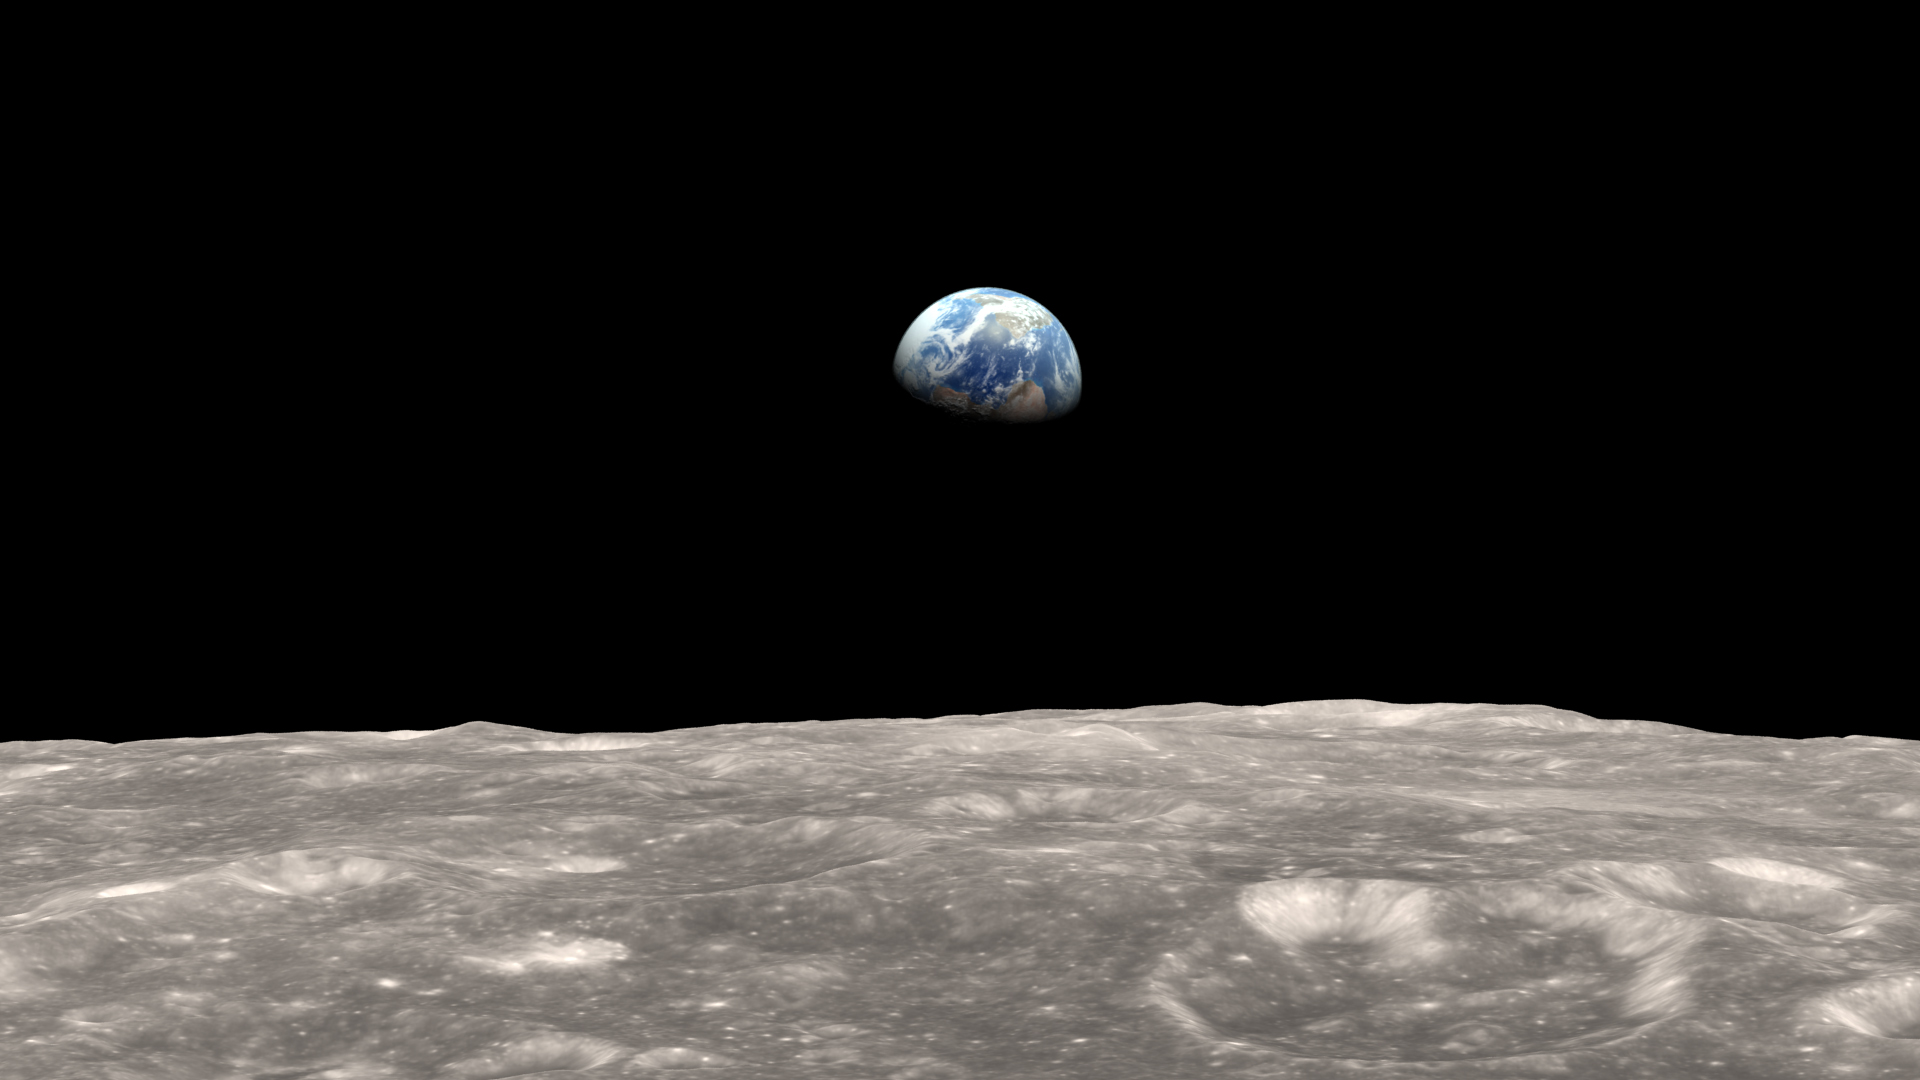 earth from the moon nasa - photo #2